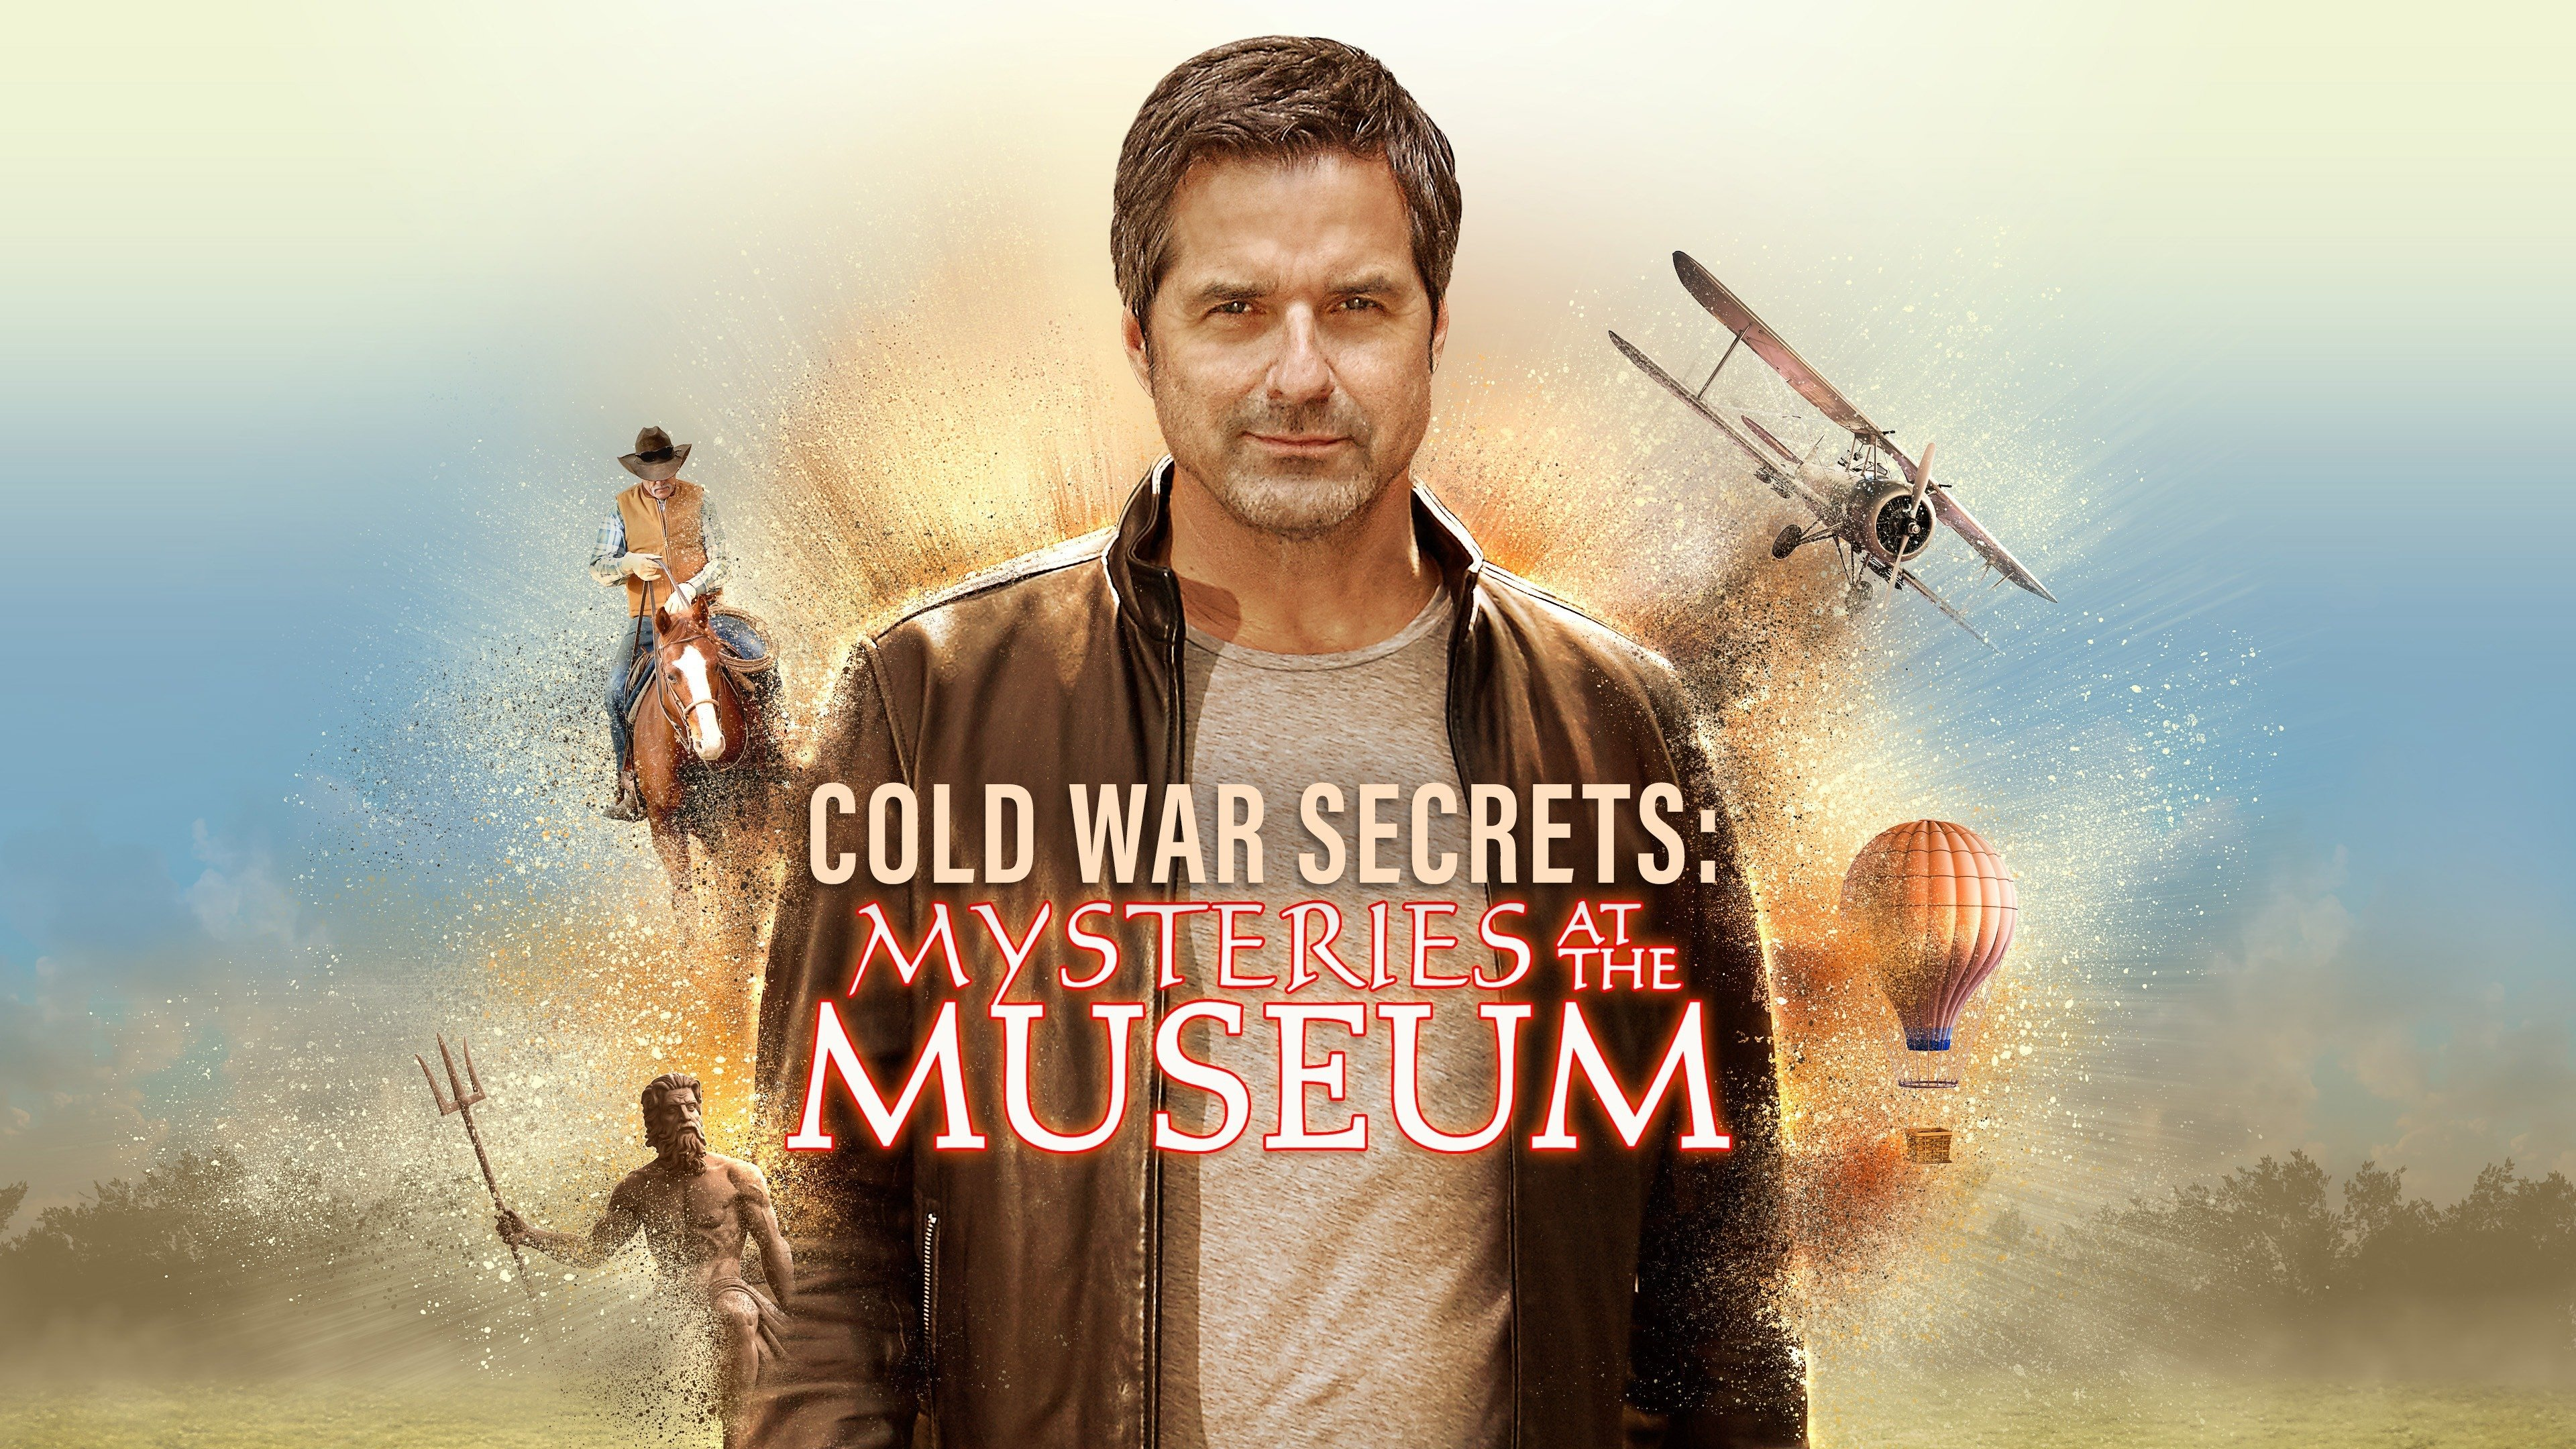 Cold War Secrets: Mysteries at the Museum